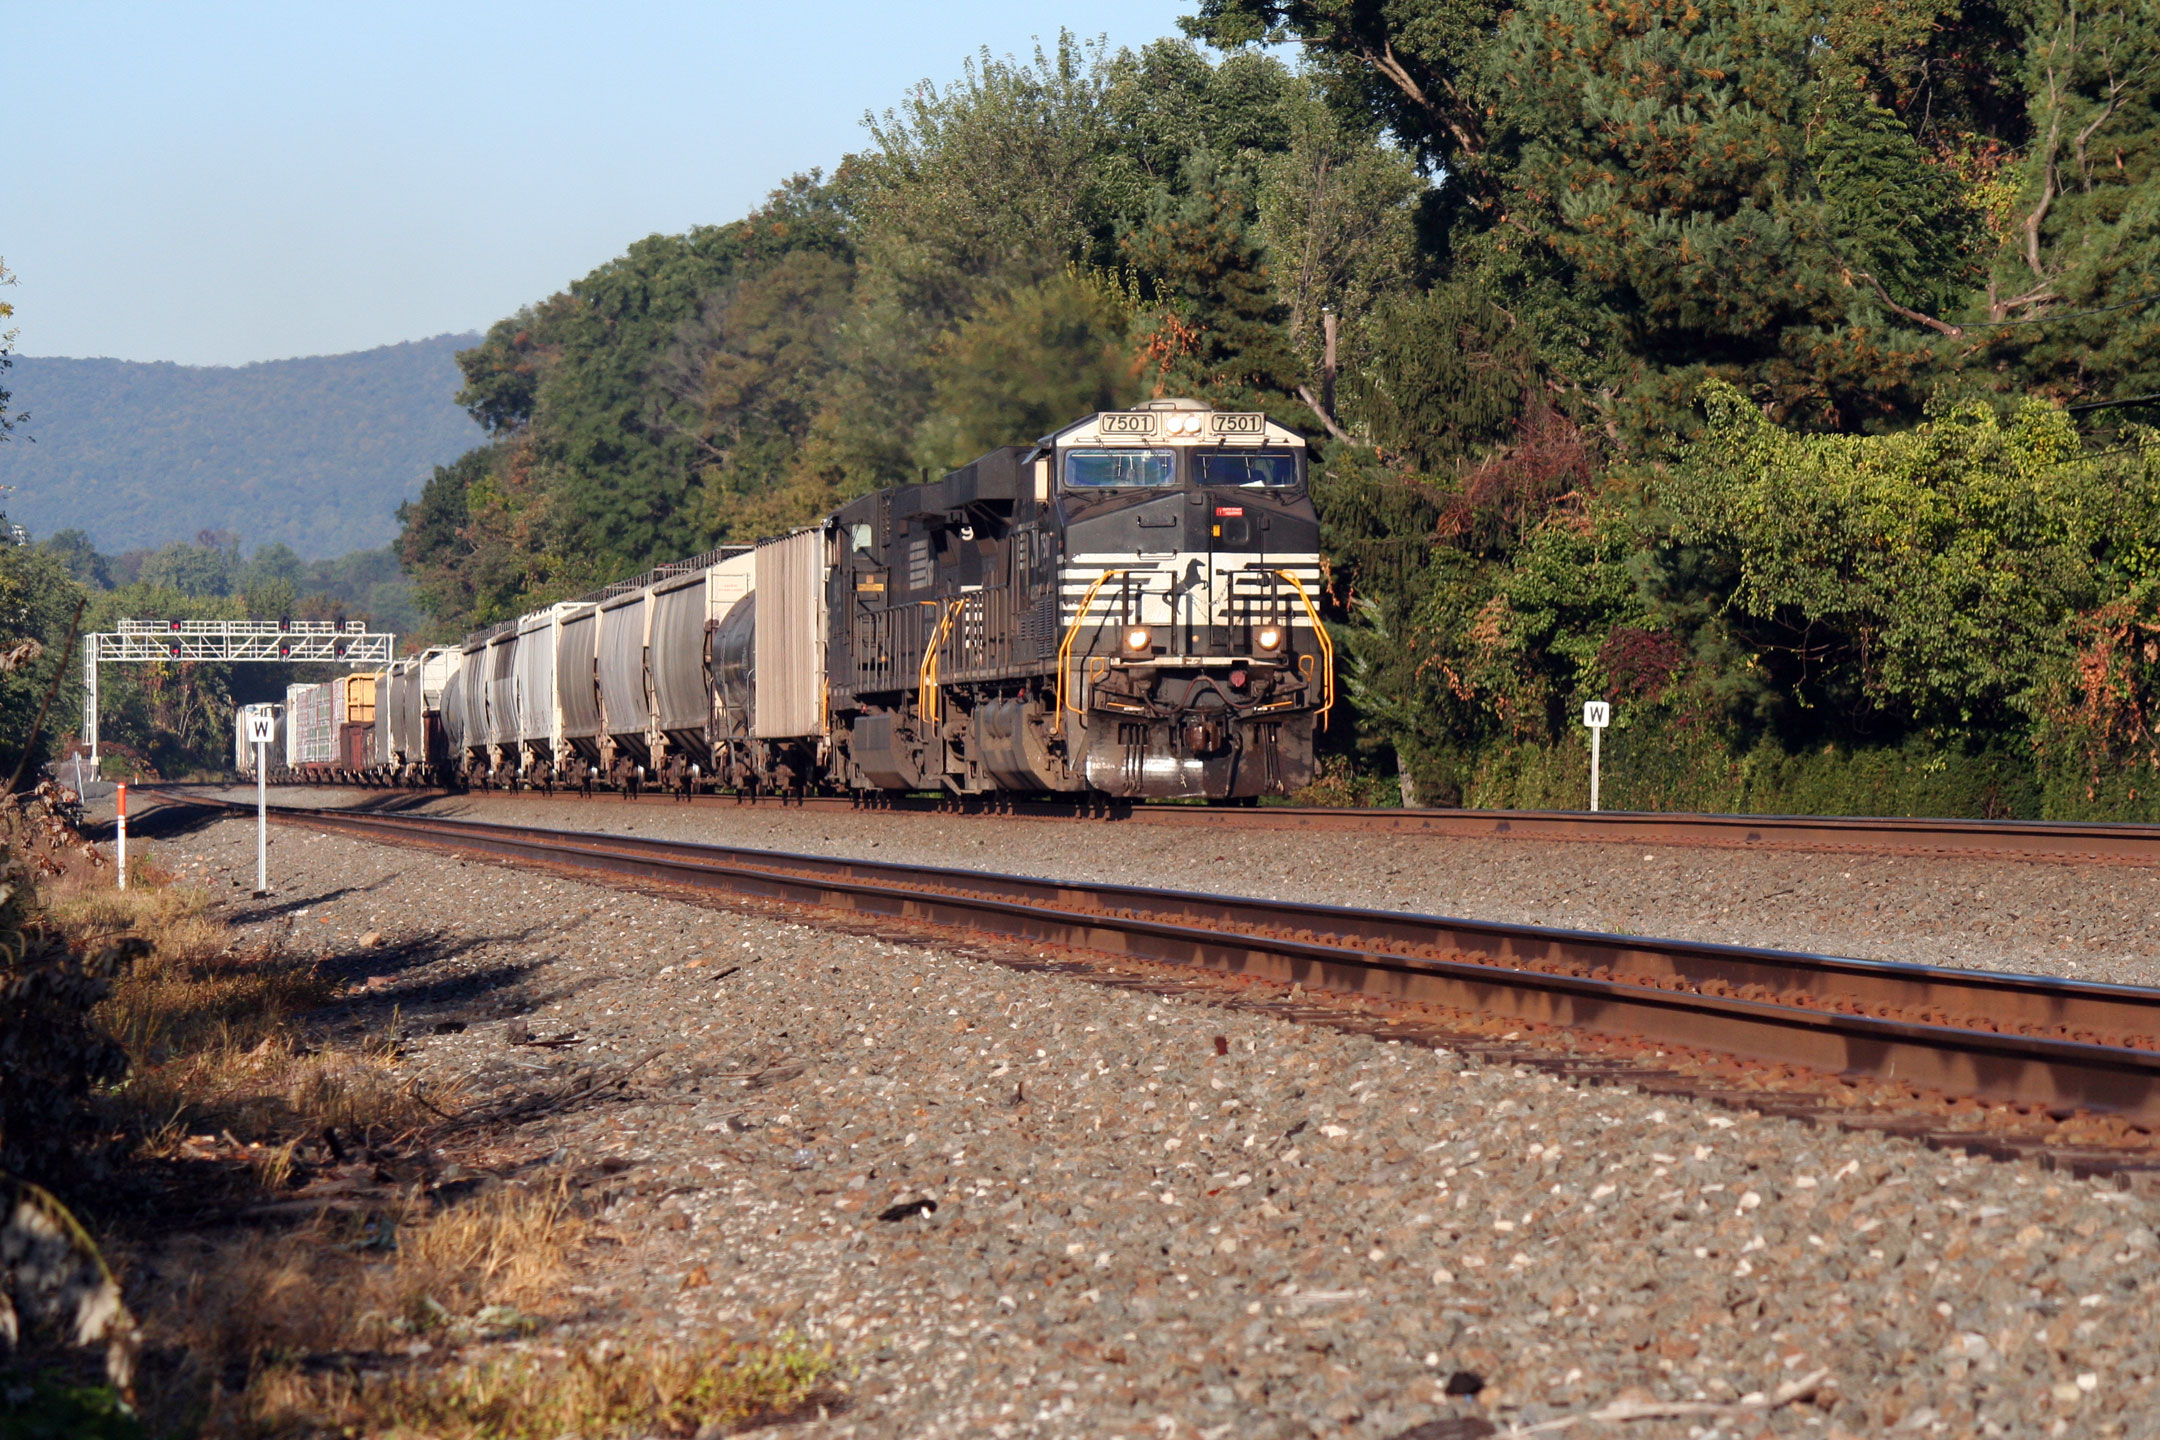 Our first train of the morning, an eastbound manifest blows through Cove PA, headed for Harrisburg.